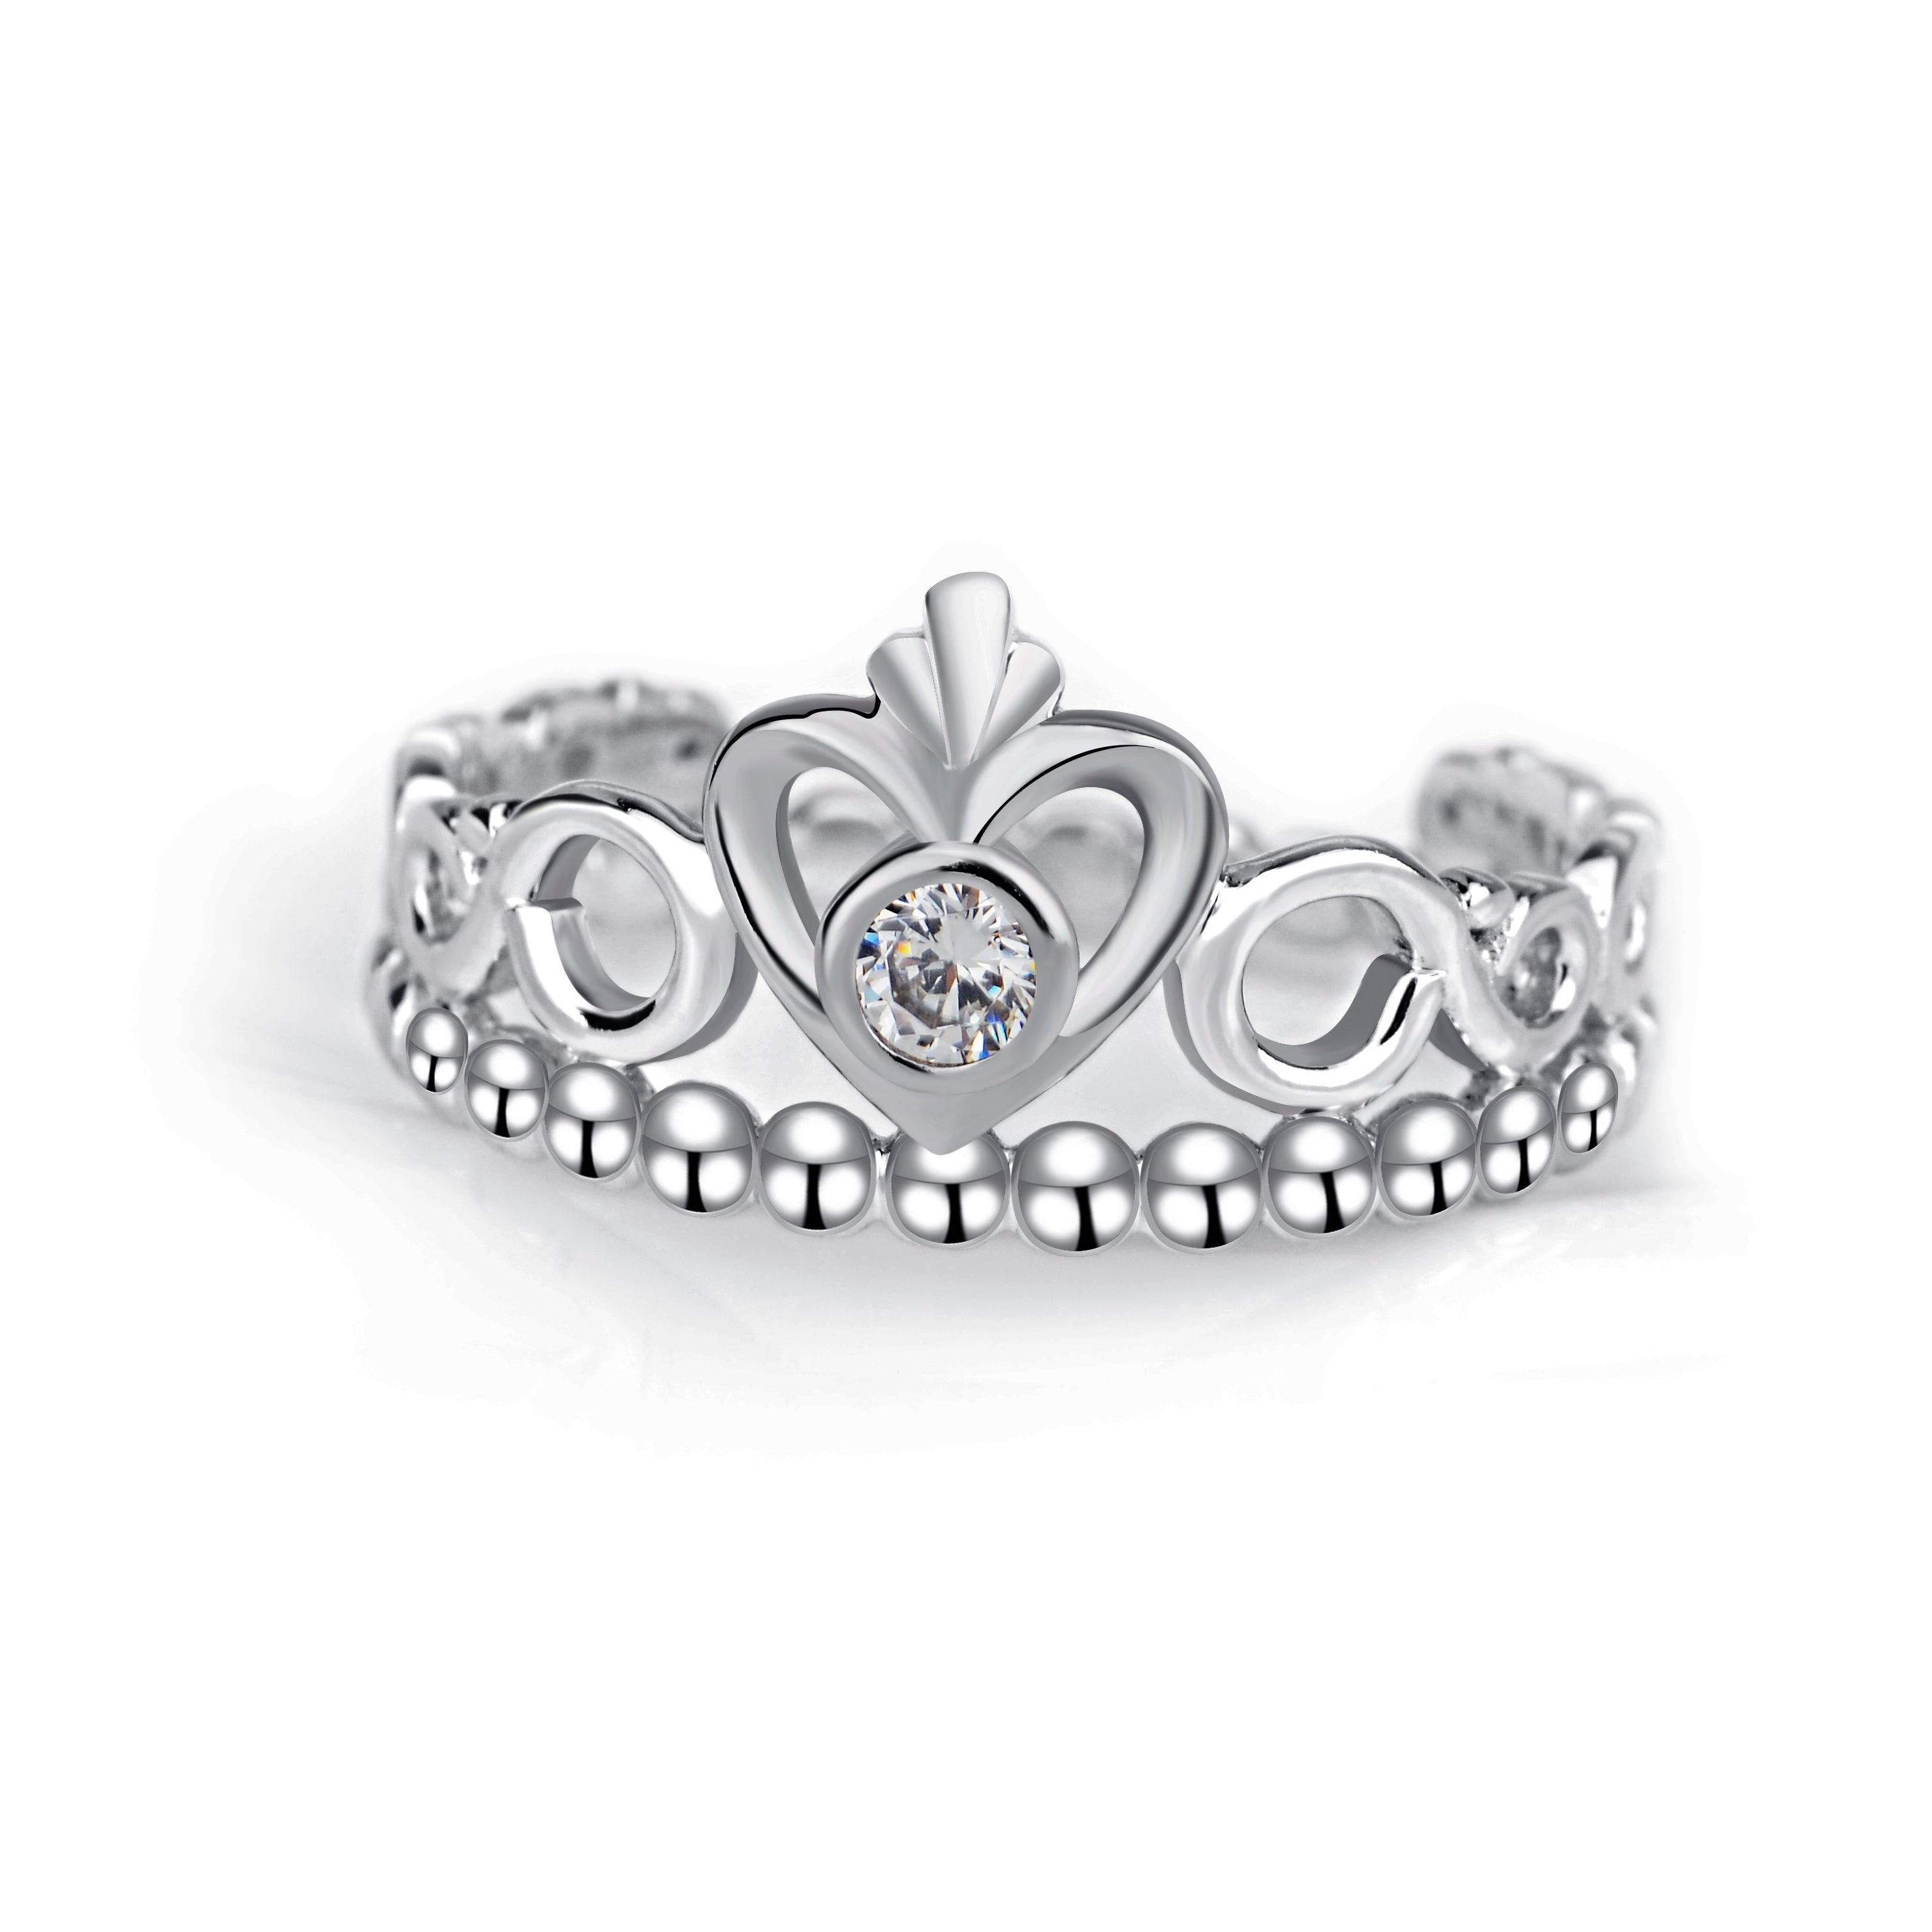 Crown Ring Fashion Jewelry Design Engagement S925 Silver Ring